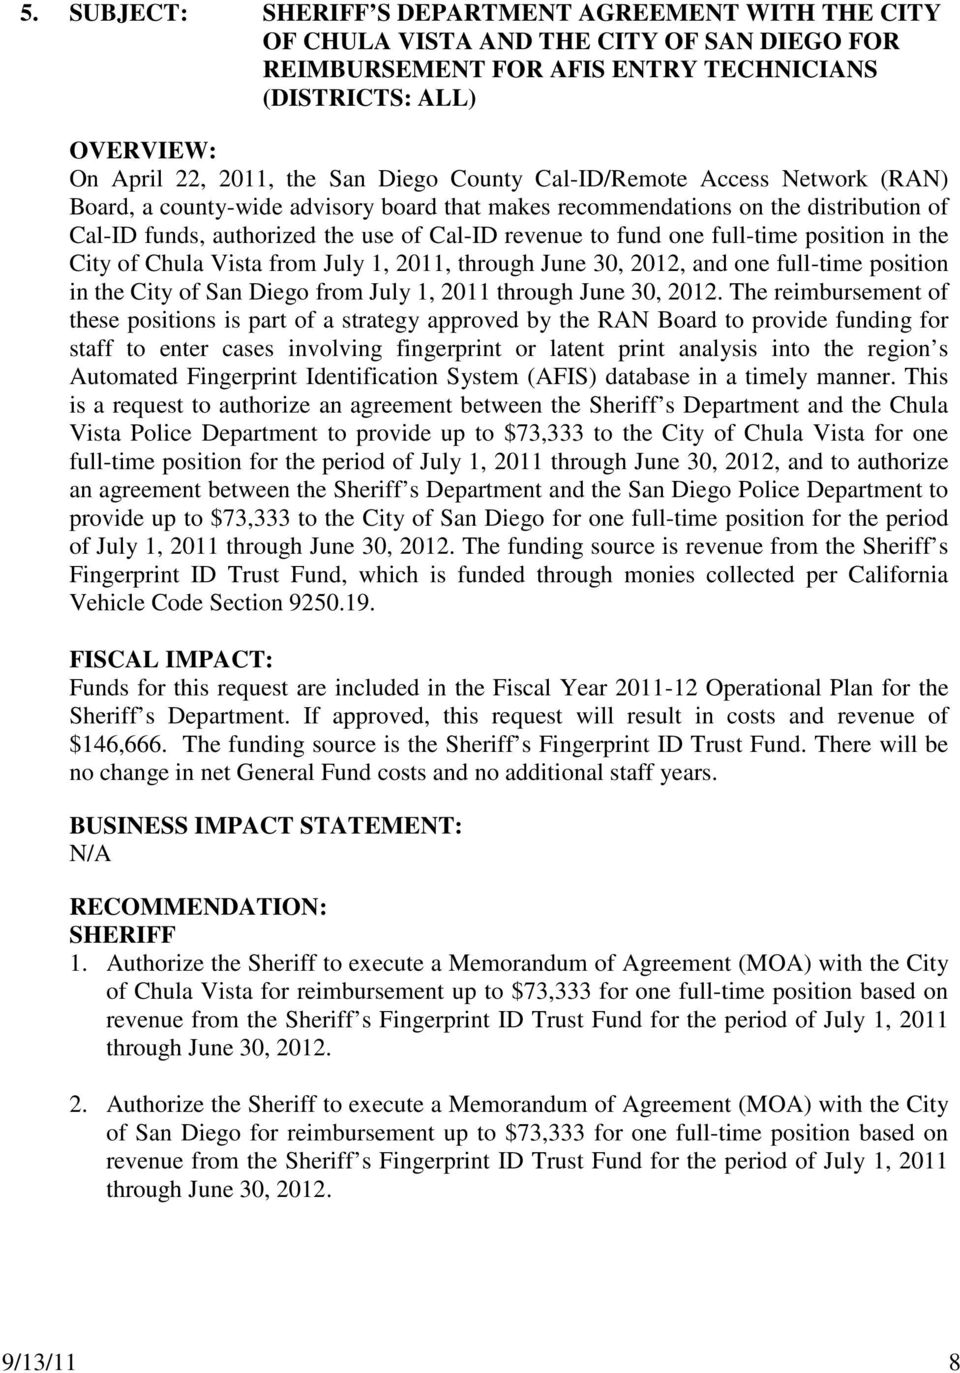 position in the City of Chula Vista from July 1, 2011, through June 30, 2012, and one full-time position in the City of San Diego from July 1, 2011 through June 30, 2012.